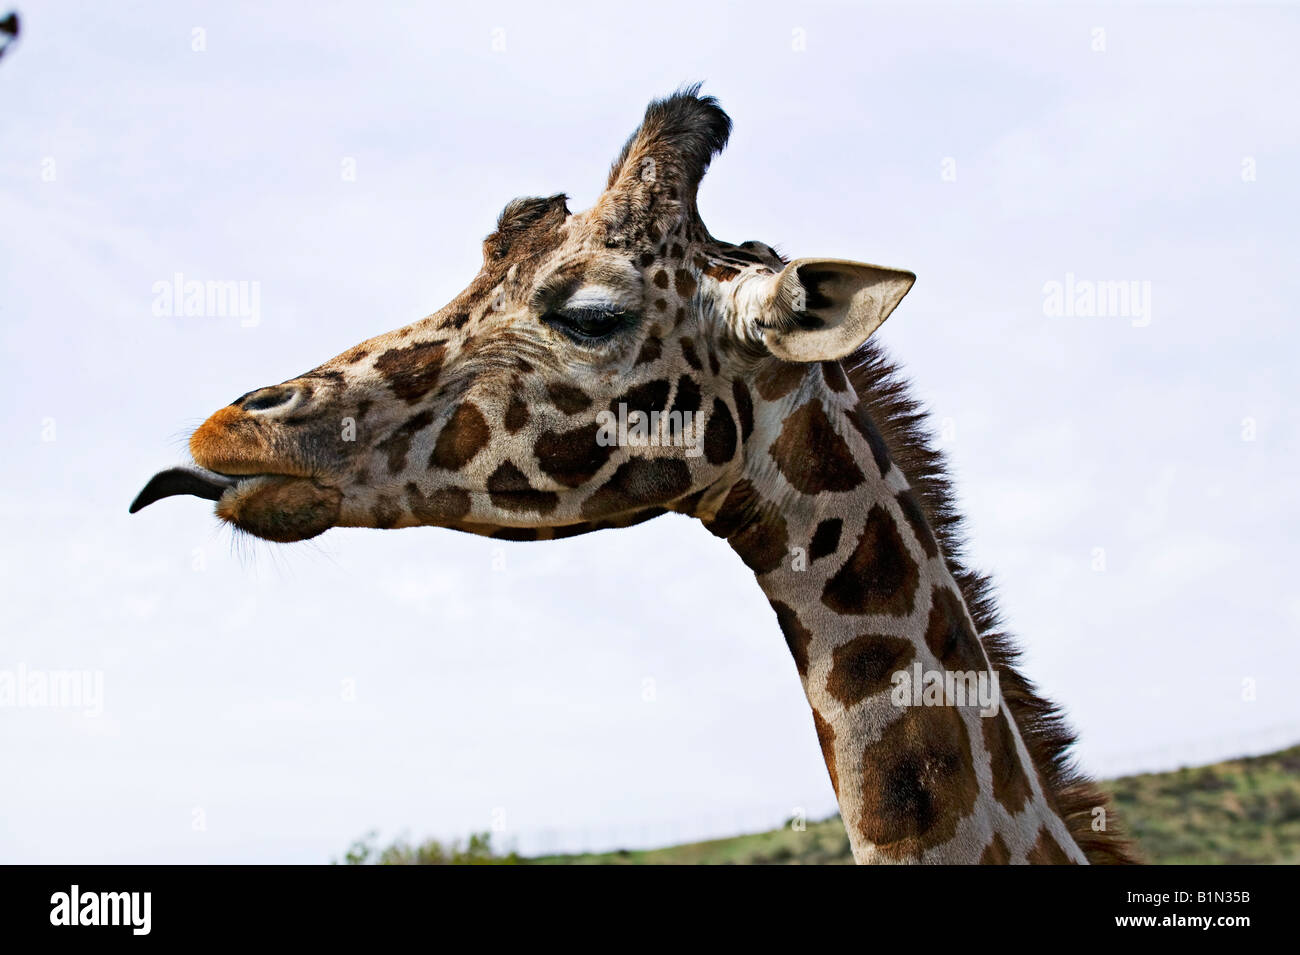 Giraffe sticking tongue out - Stock Image